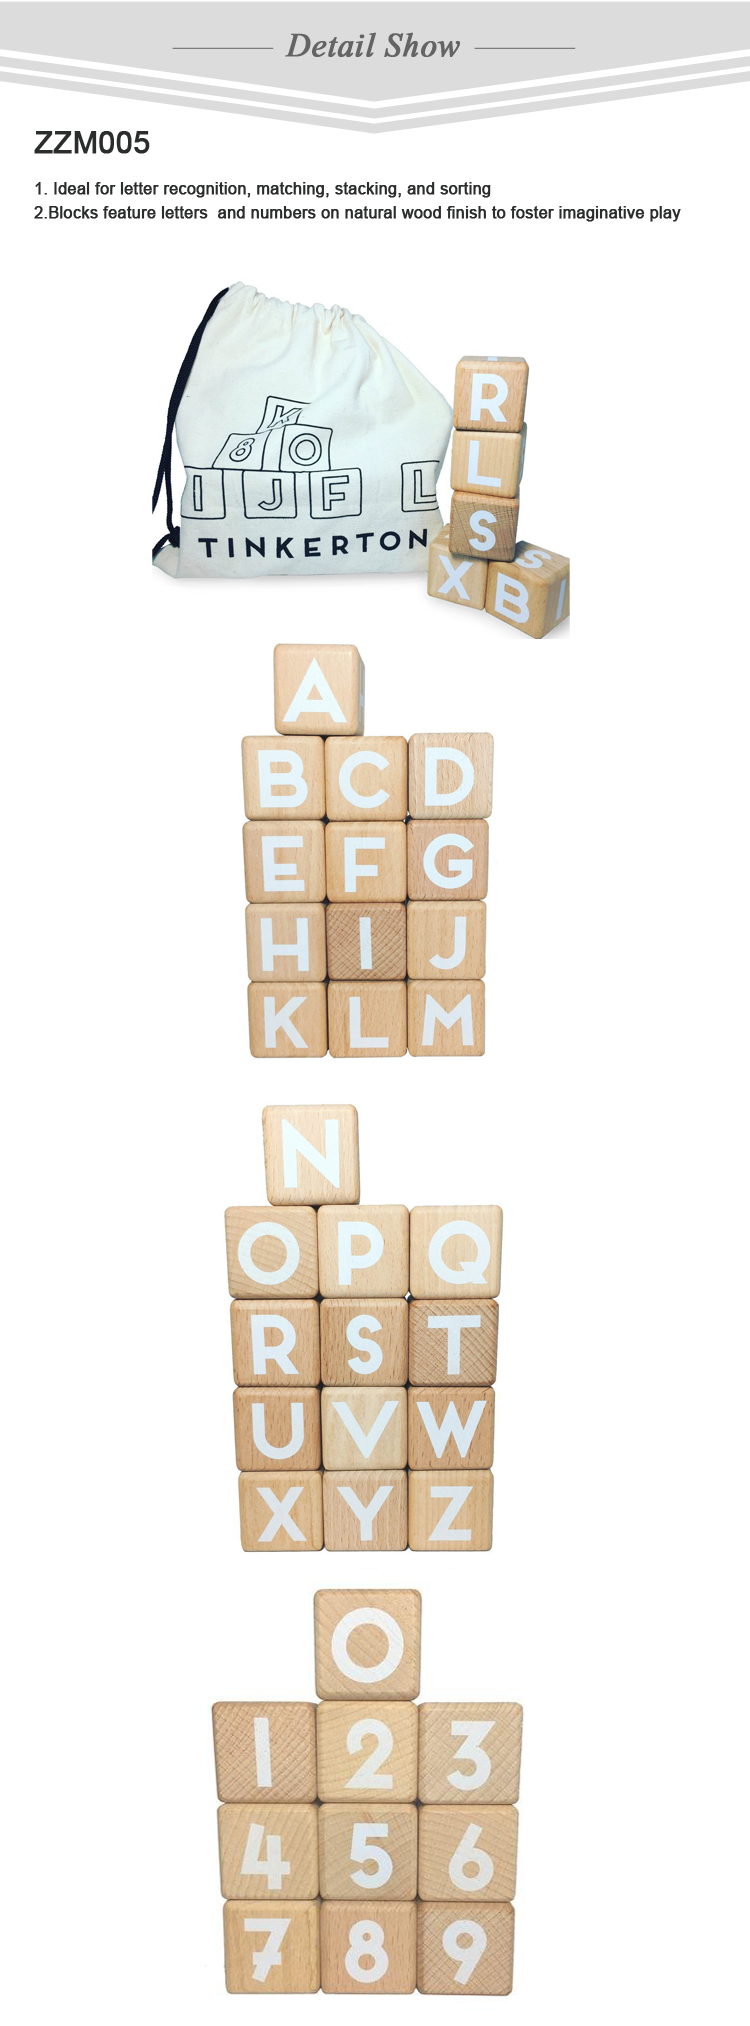 2018 hot sale Blocks feature wooden decoration letter